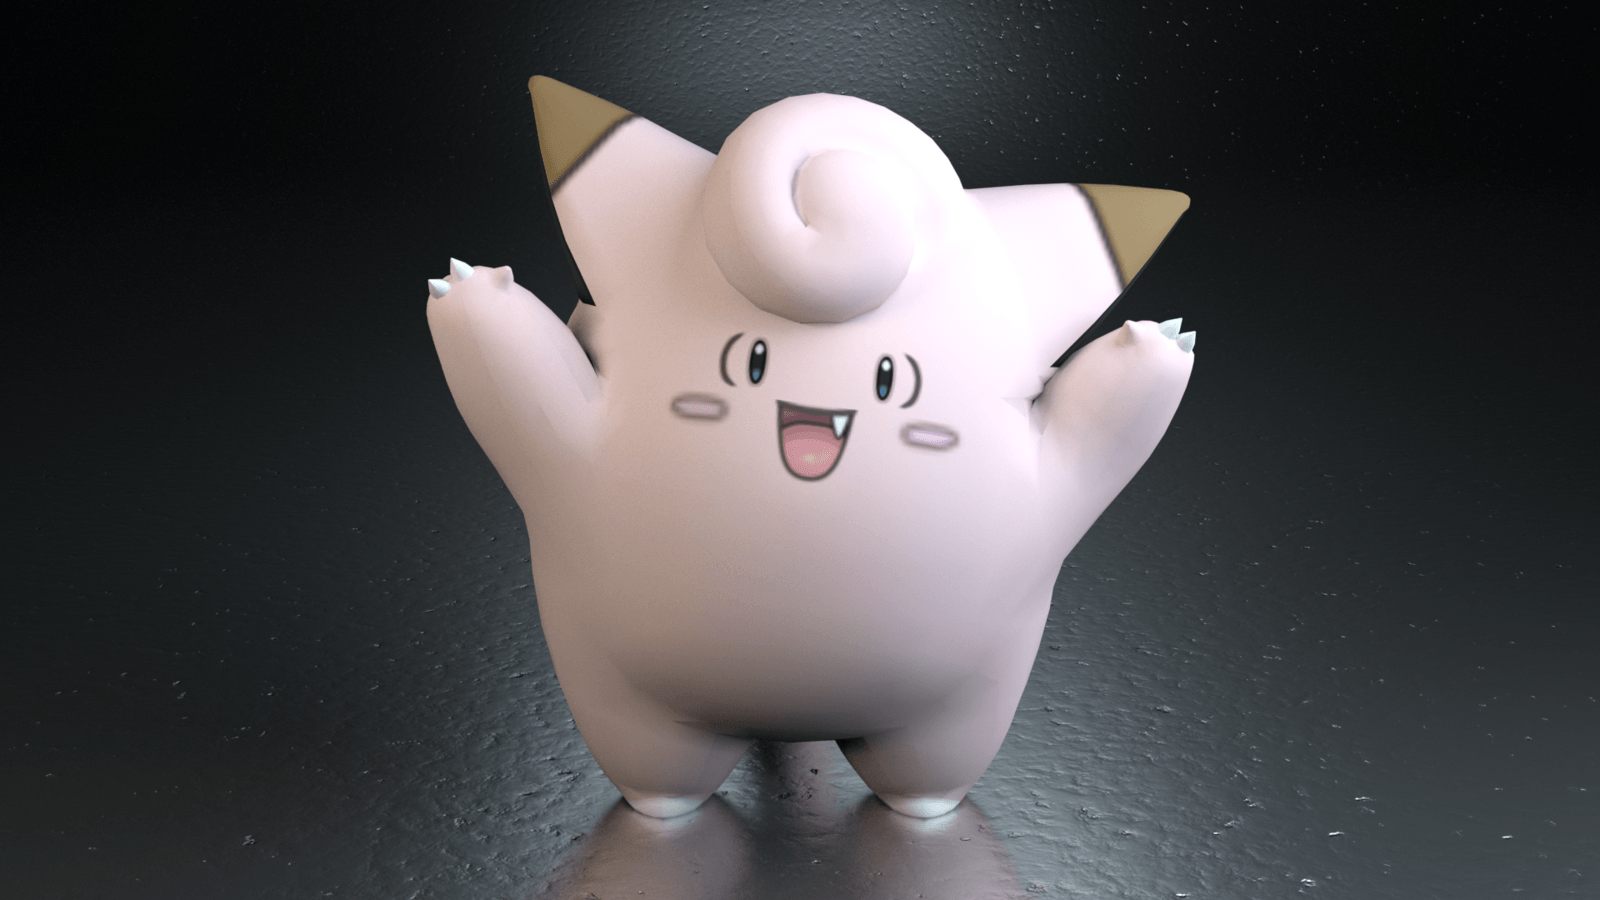 035. Clefairy by TheAdorableOshawott on DeviantArt